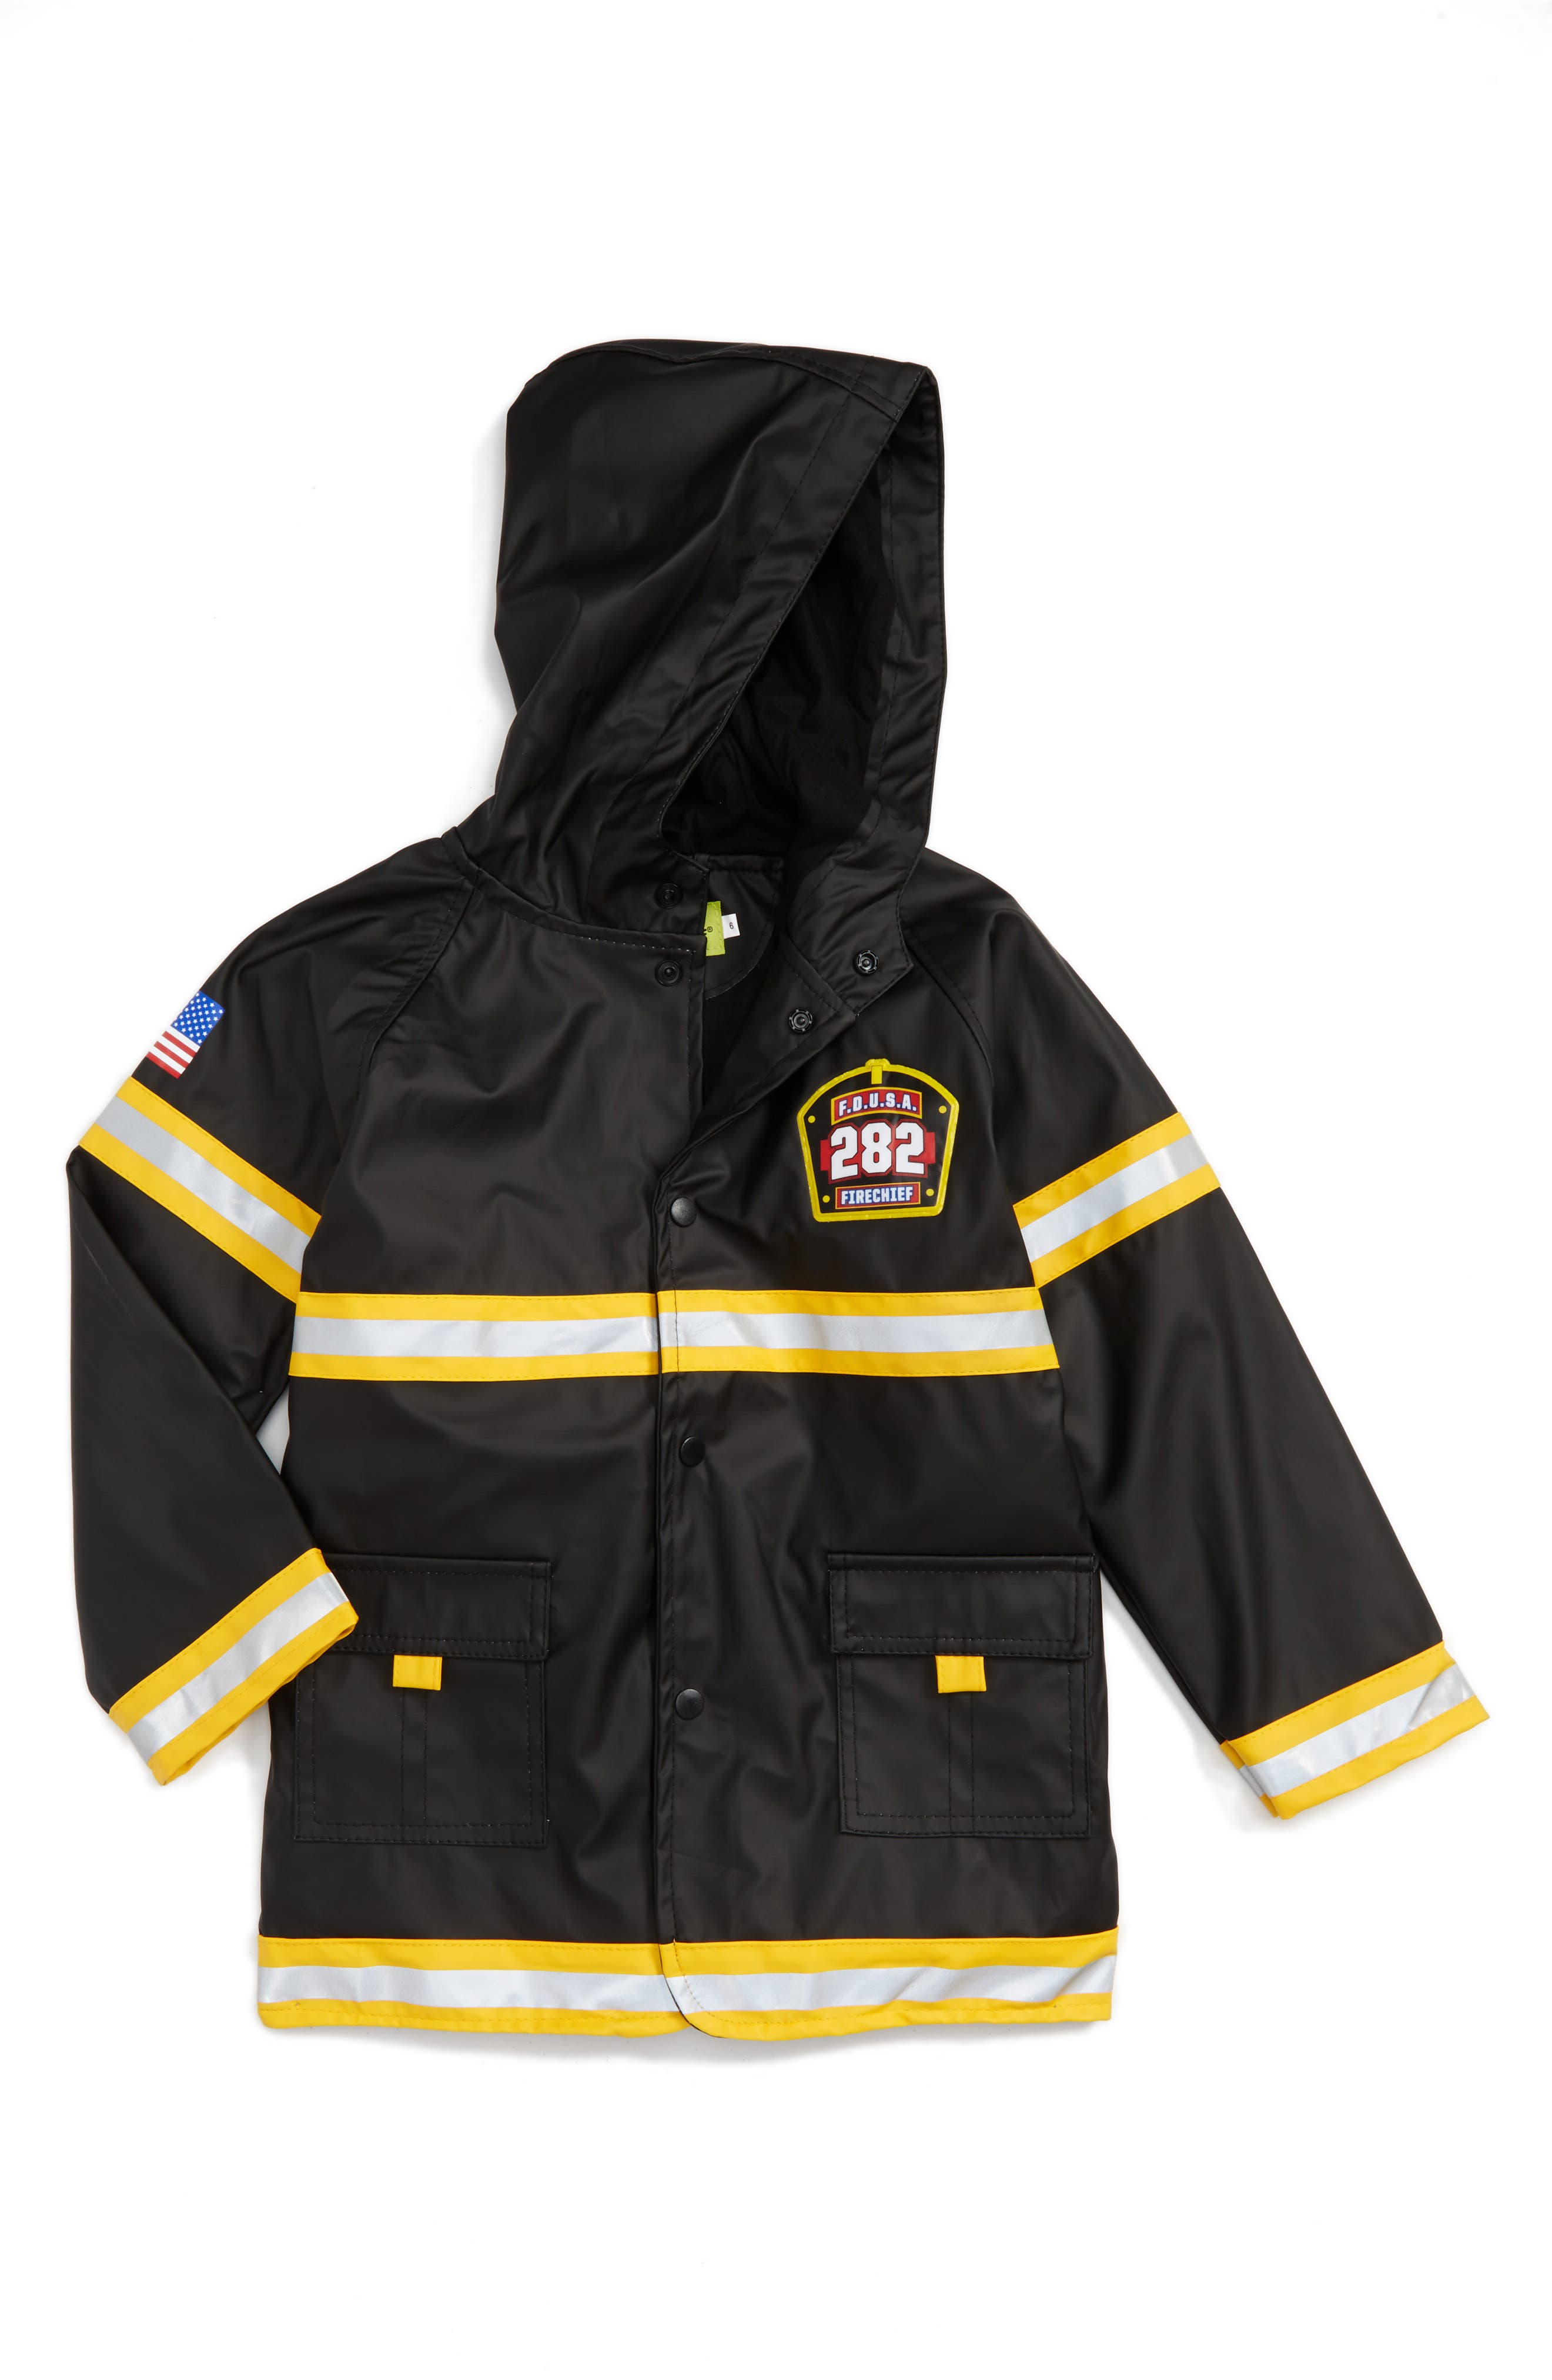 Main Image - Western Chief Fire Chief Raincoat (Toddler & Little Kid)